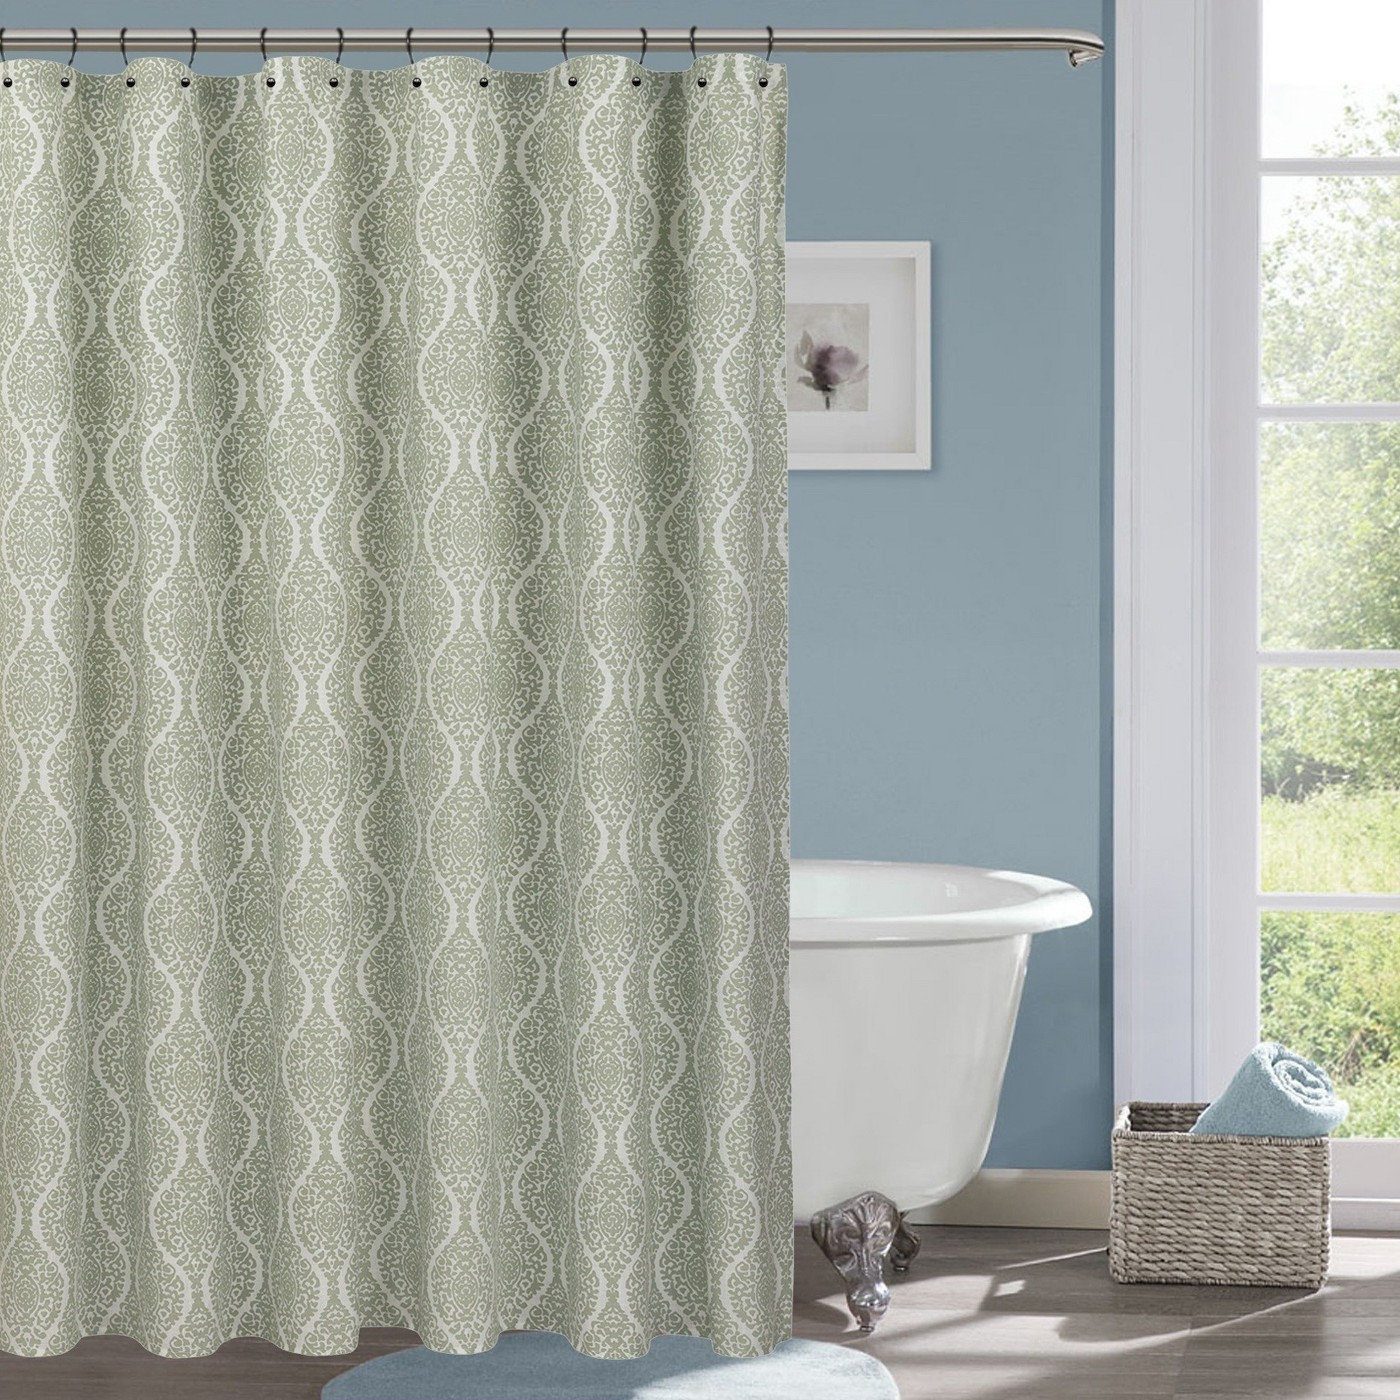 Wave Lines Shower Curtain White - Threshold™ - image 1 of 1